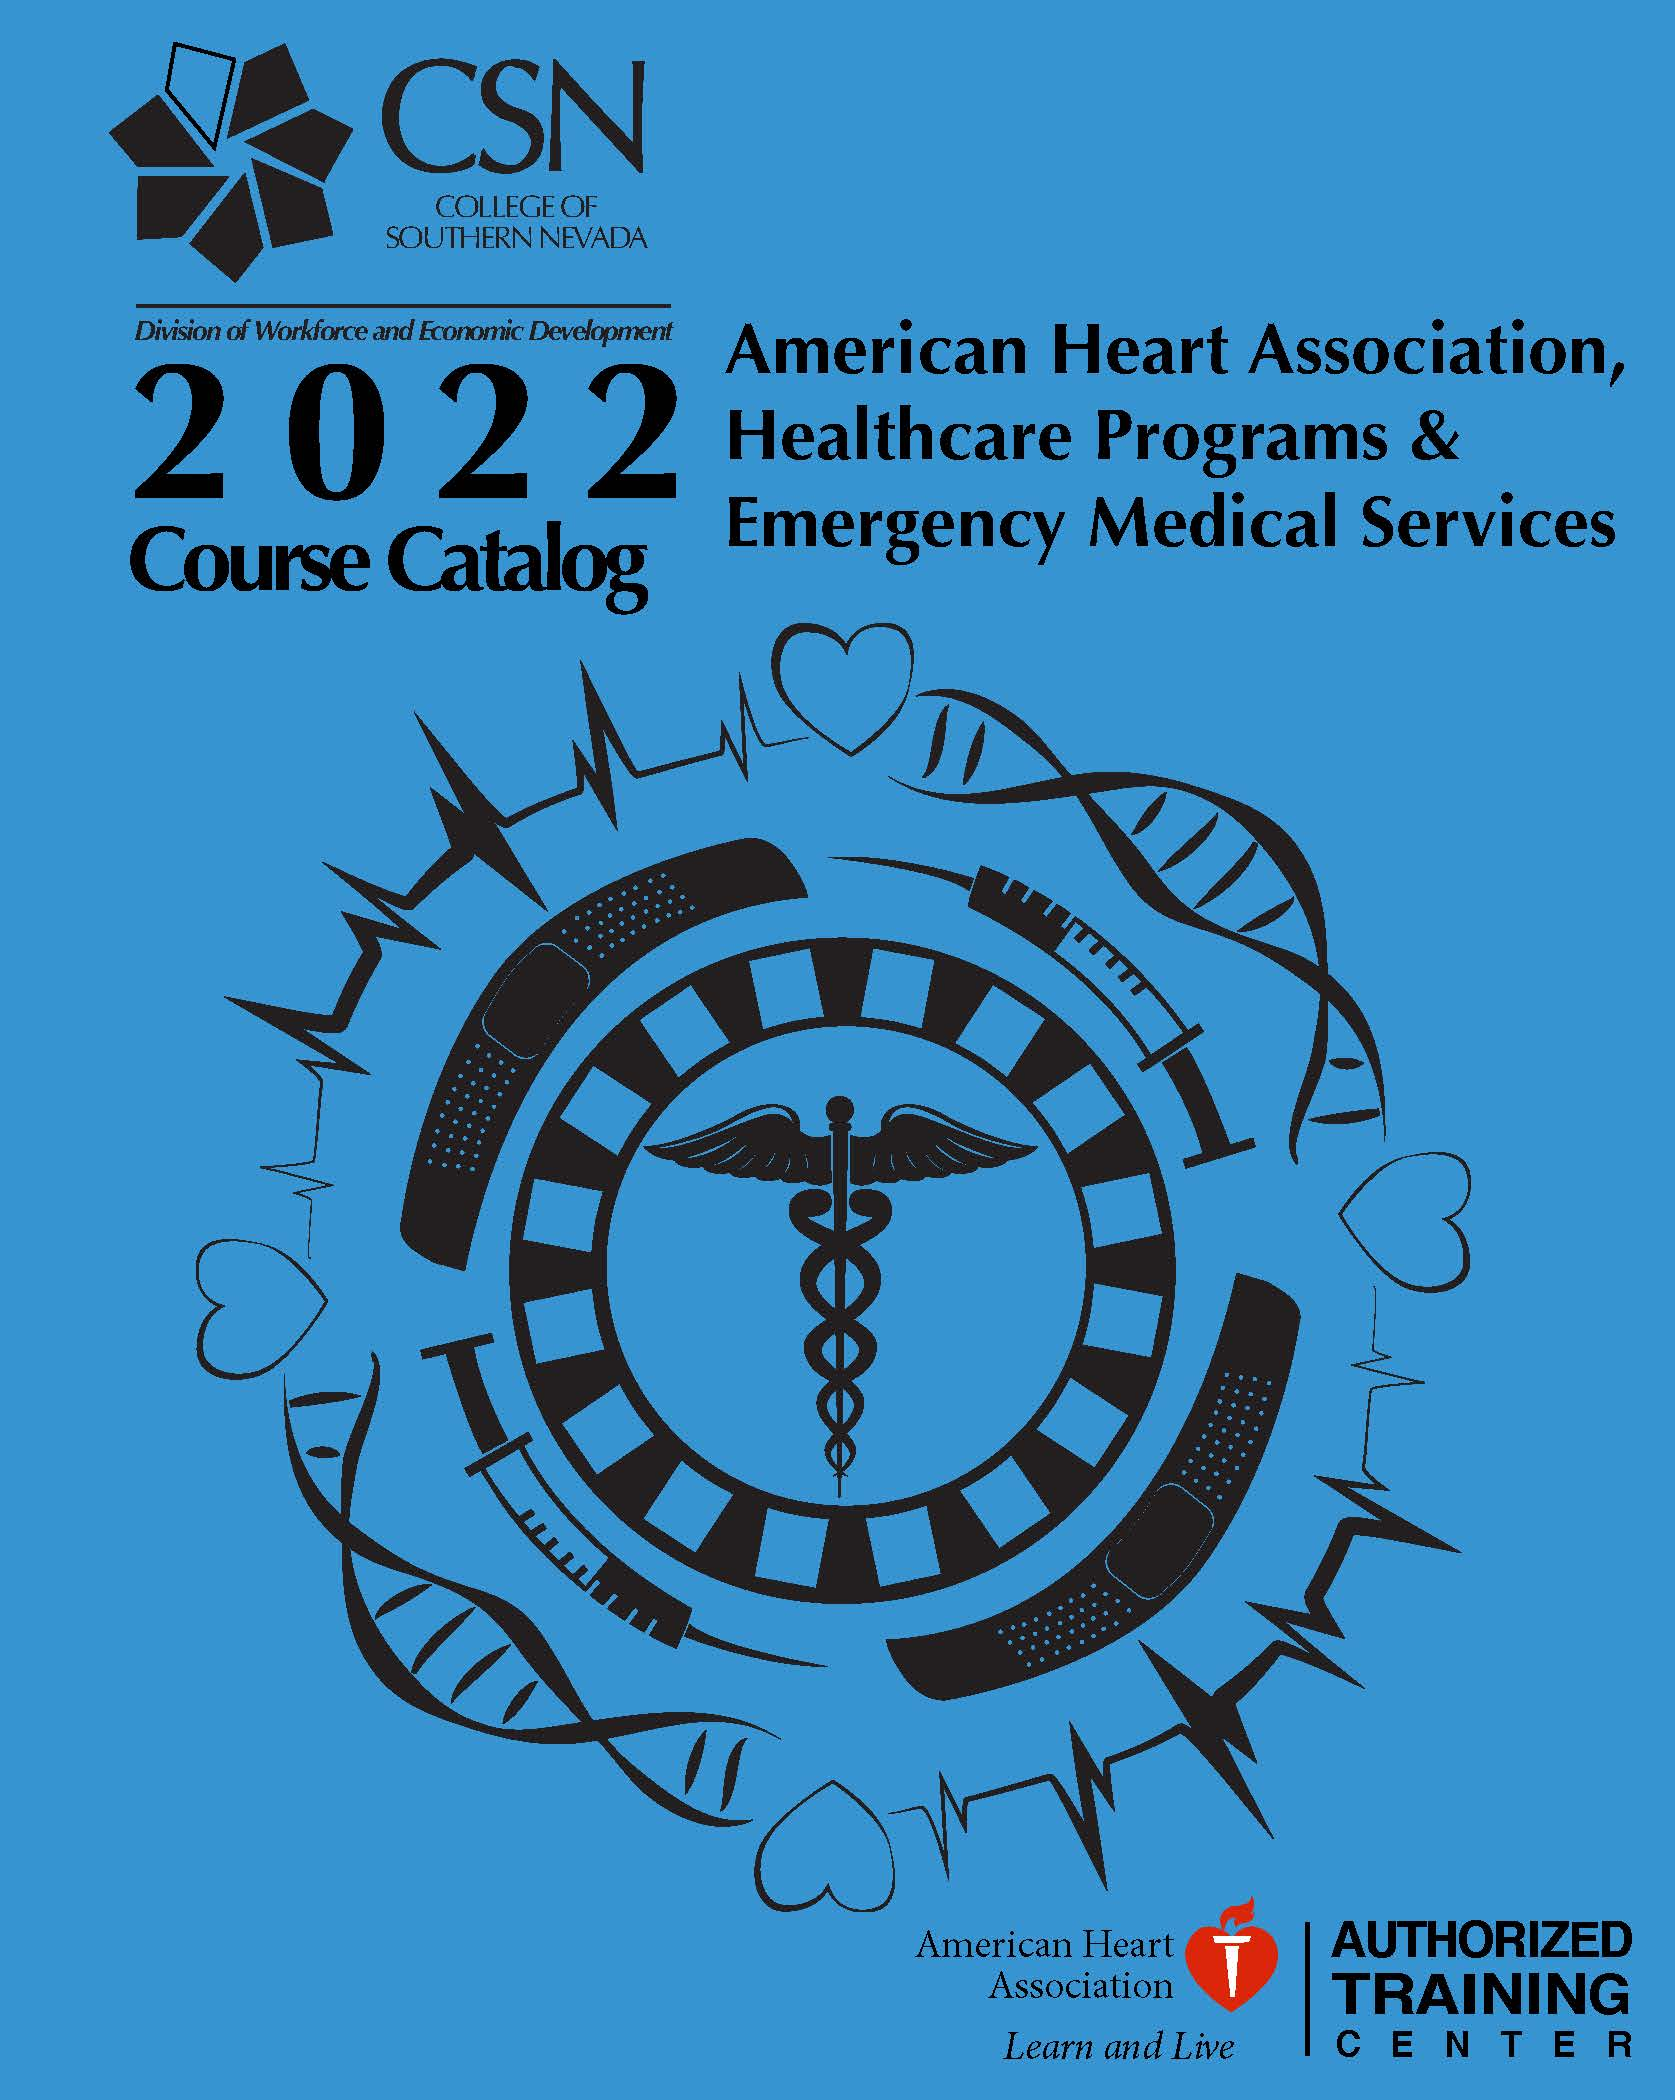 Image of the front cover of the 2012 Healthcare Class schedule.